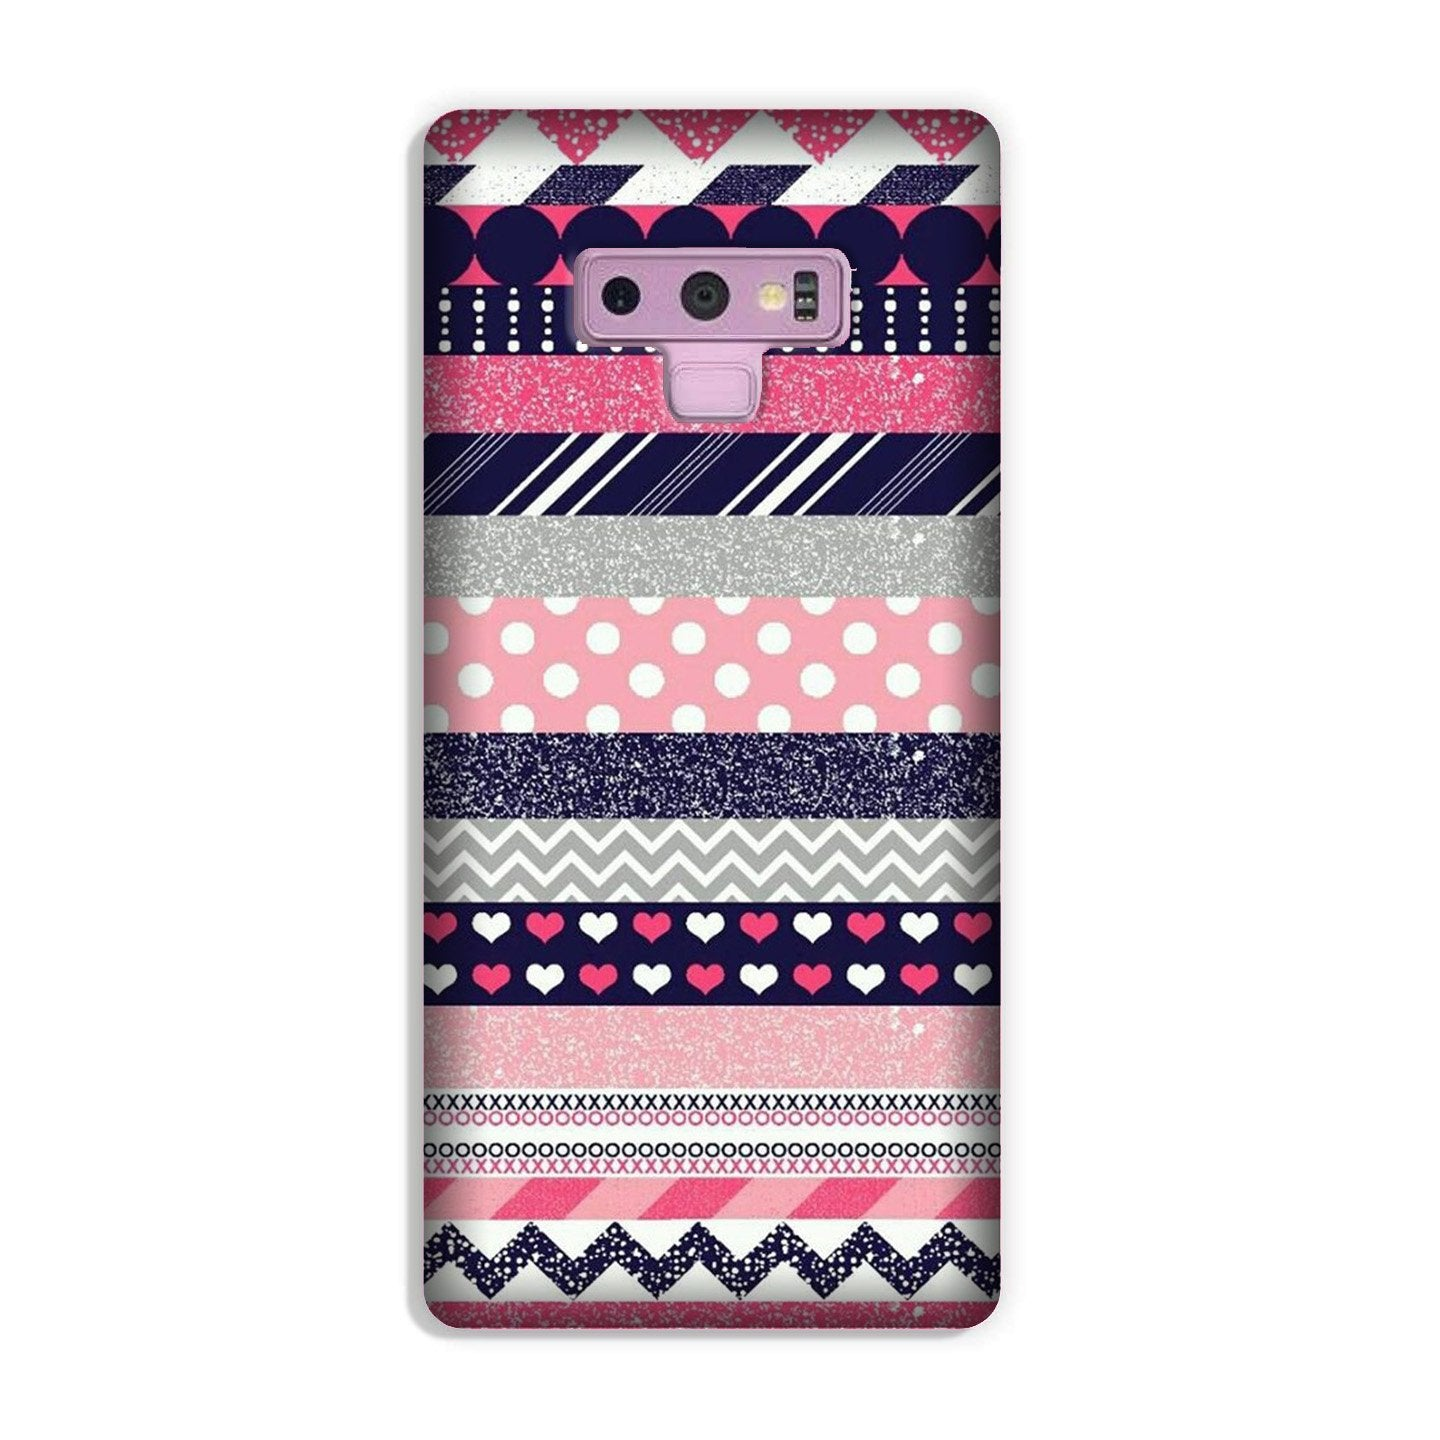 Pattern3 Case for Galaxy Note 9